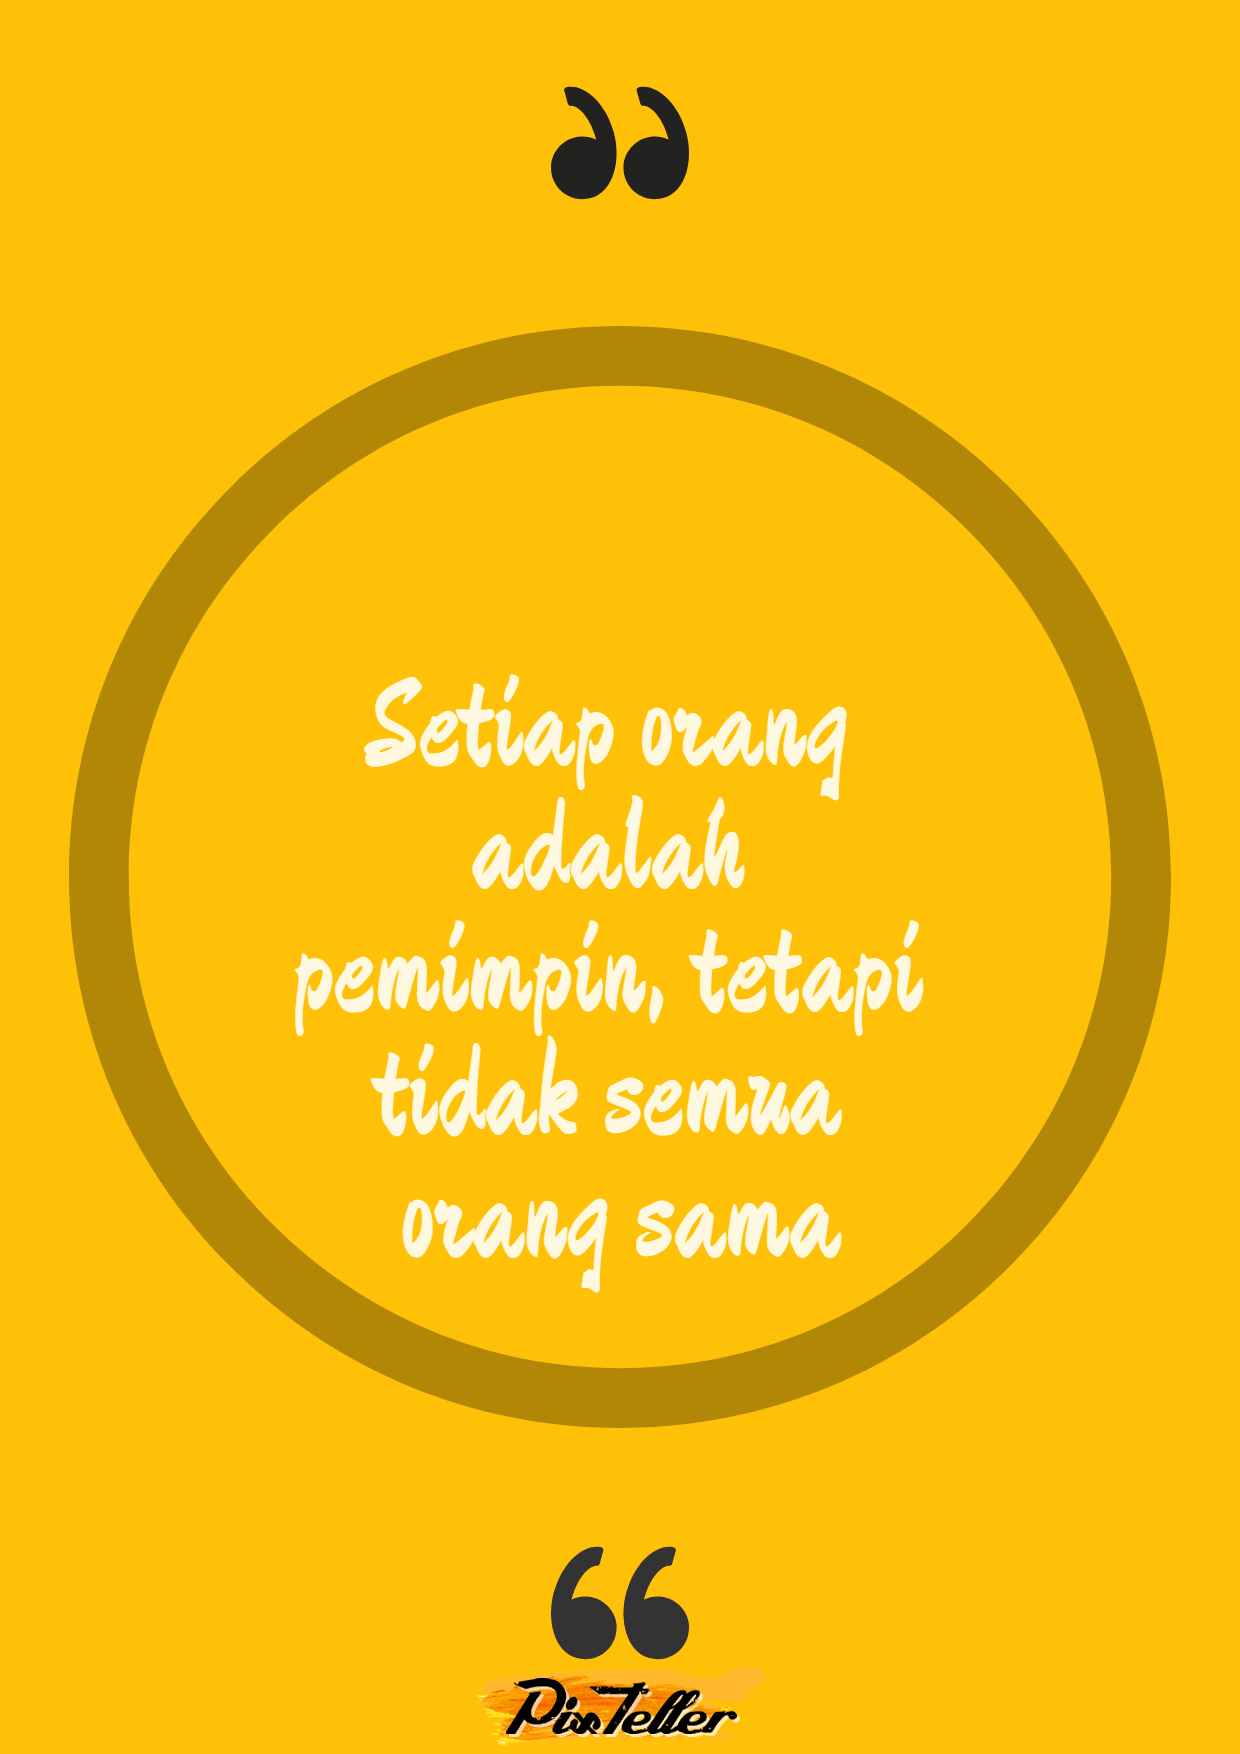 Text,                Yellow,                Font,                Line,                Happiness,                Area,                Icon,                Produce,                Smiley,                Circle,                Poster,                Quote,                Simple,                 Free Image